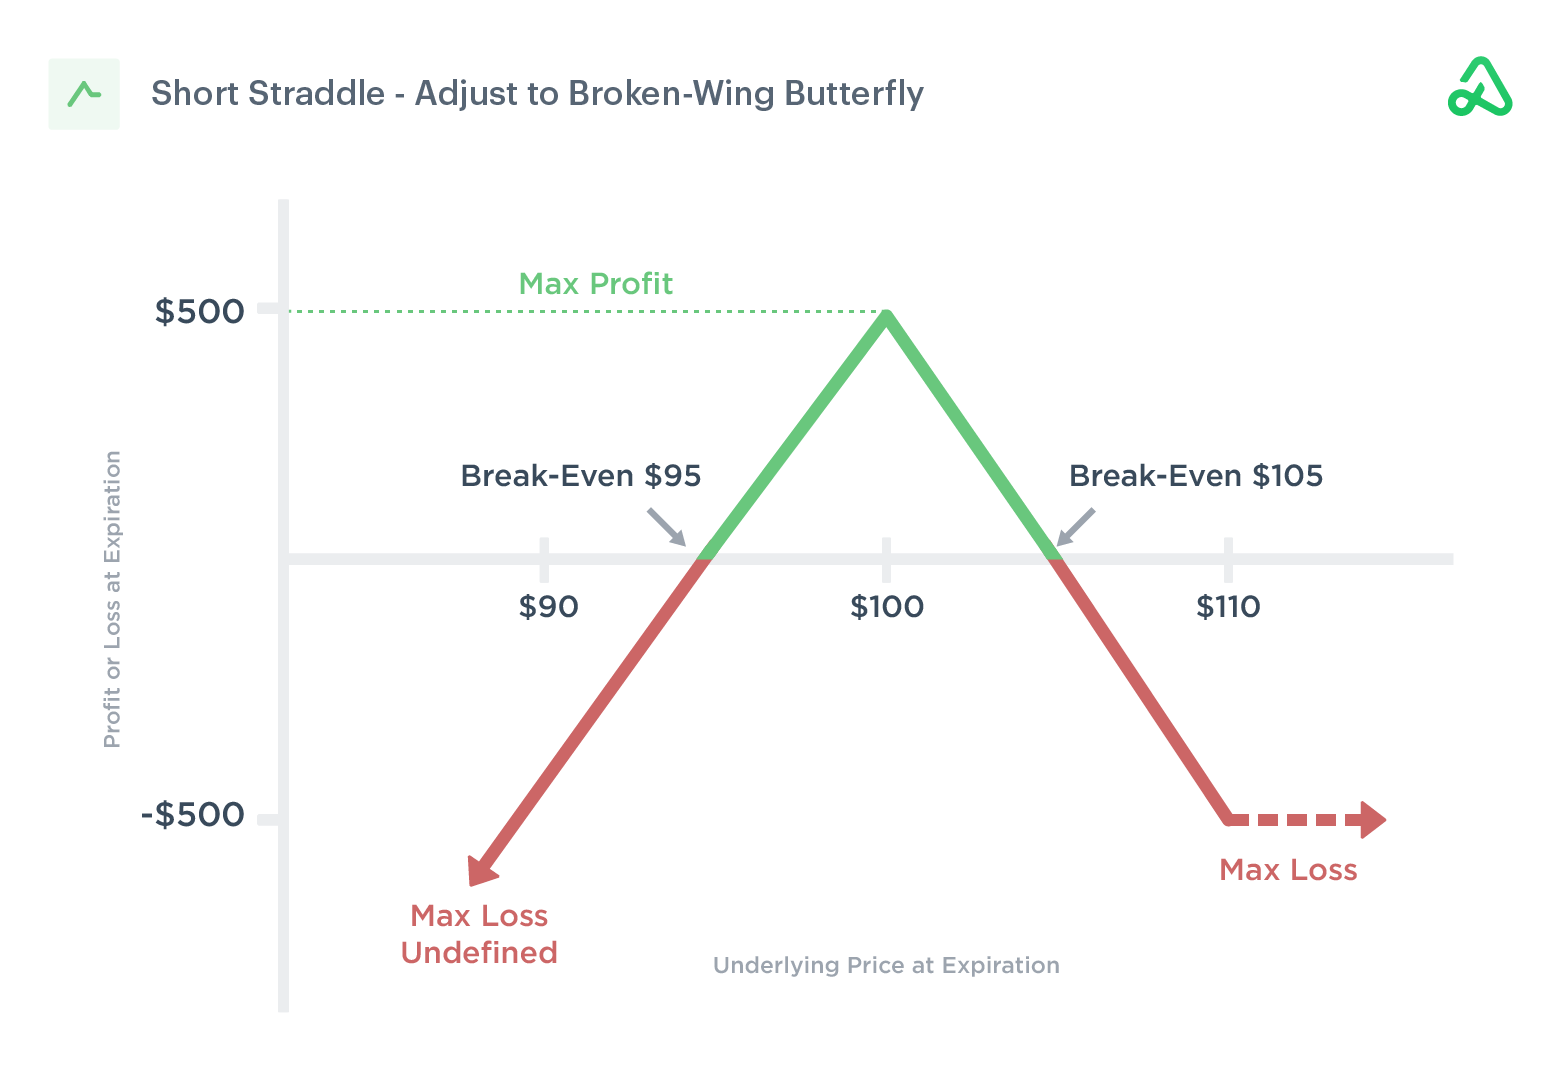 Short straddle adjusted to a broken wing butterfly. Long call purchased